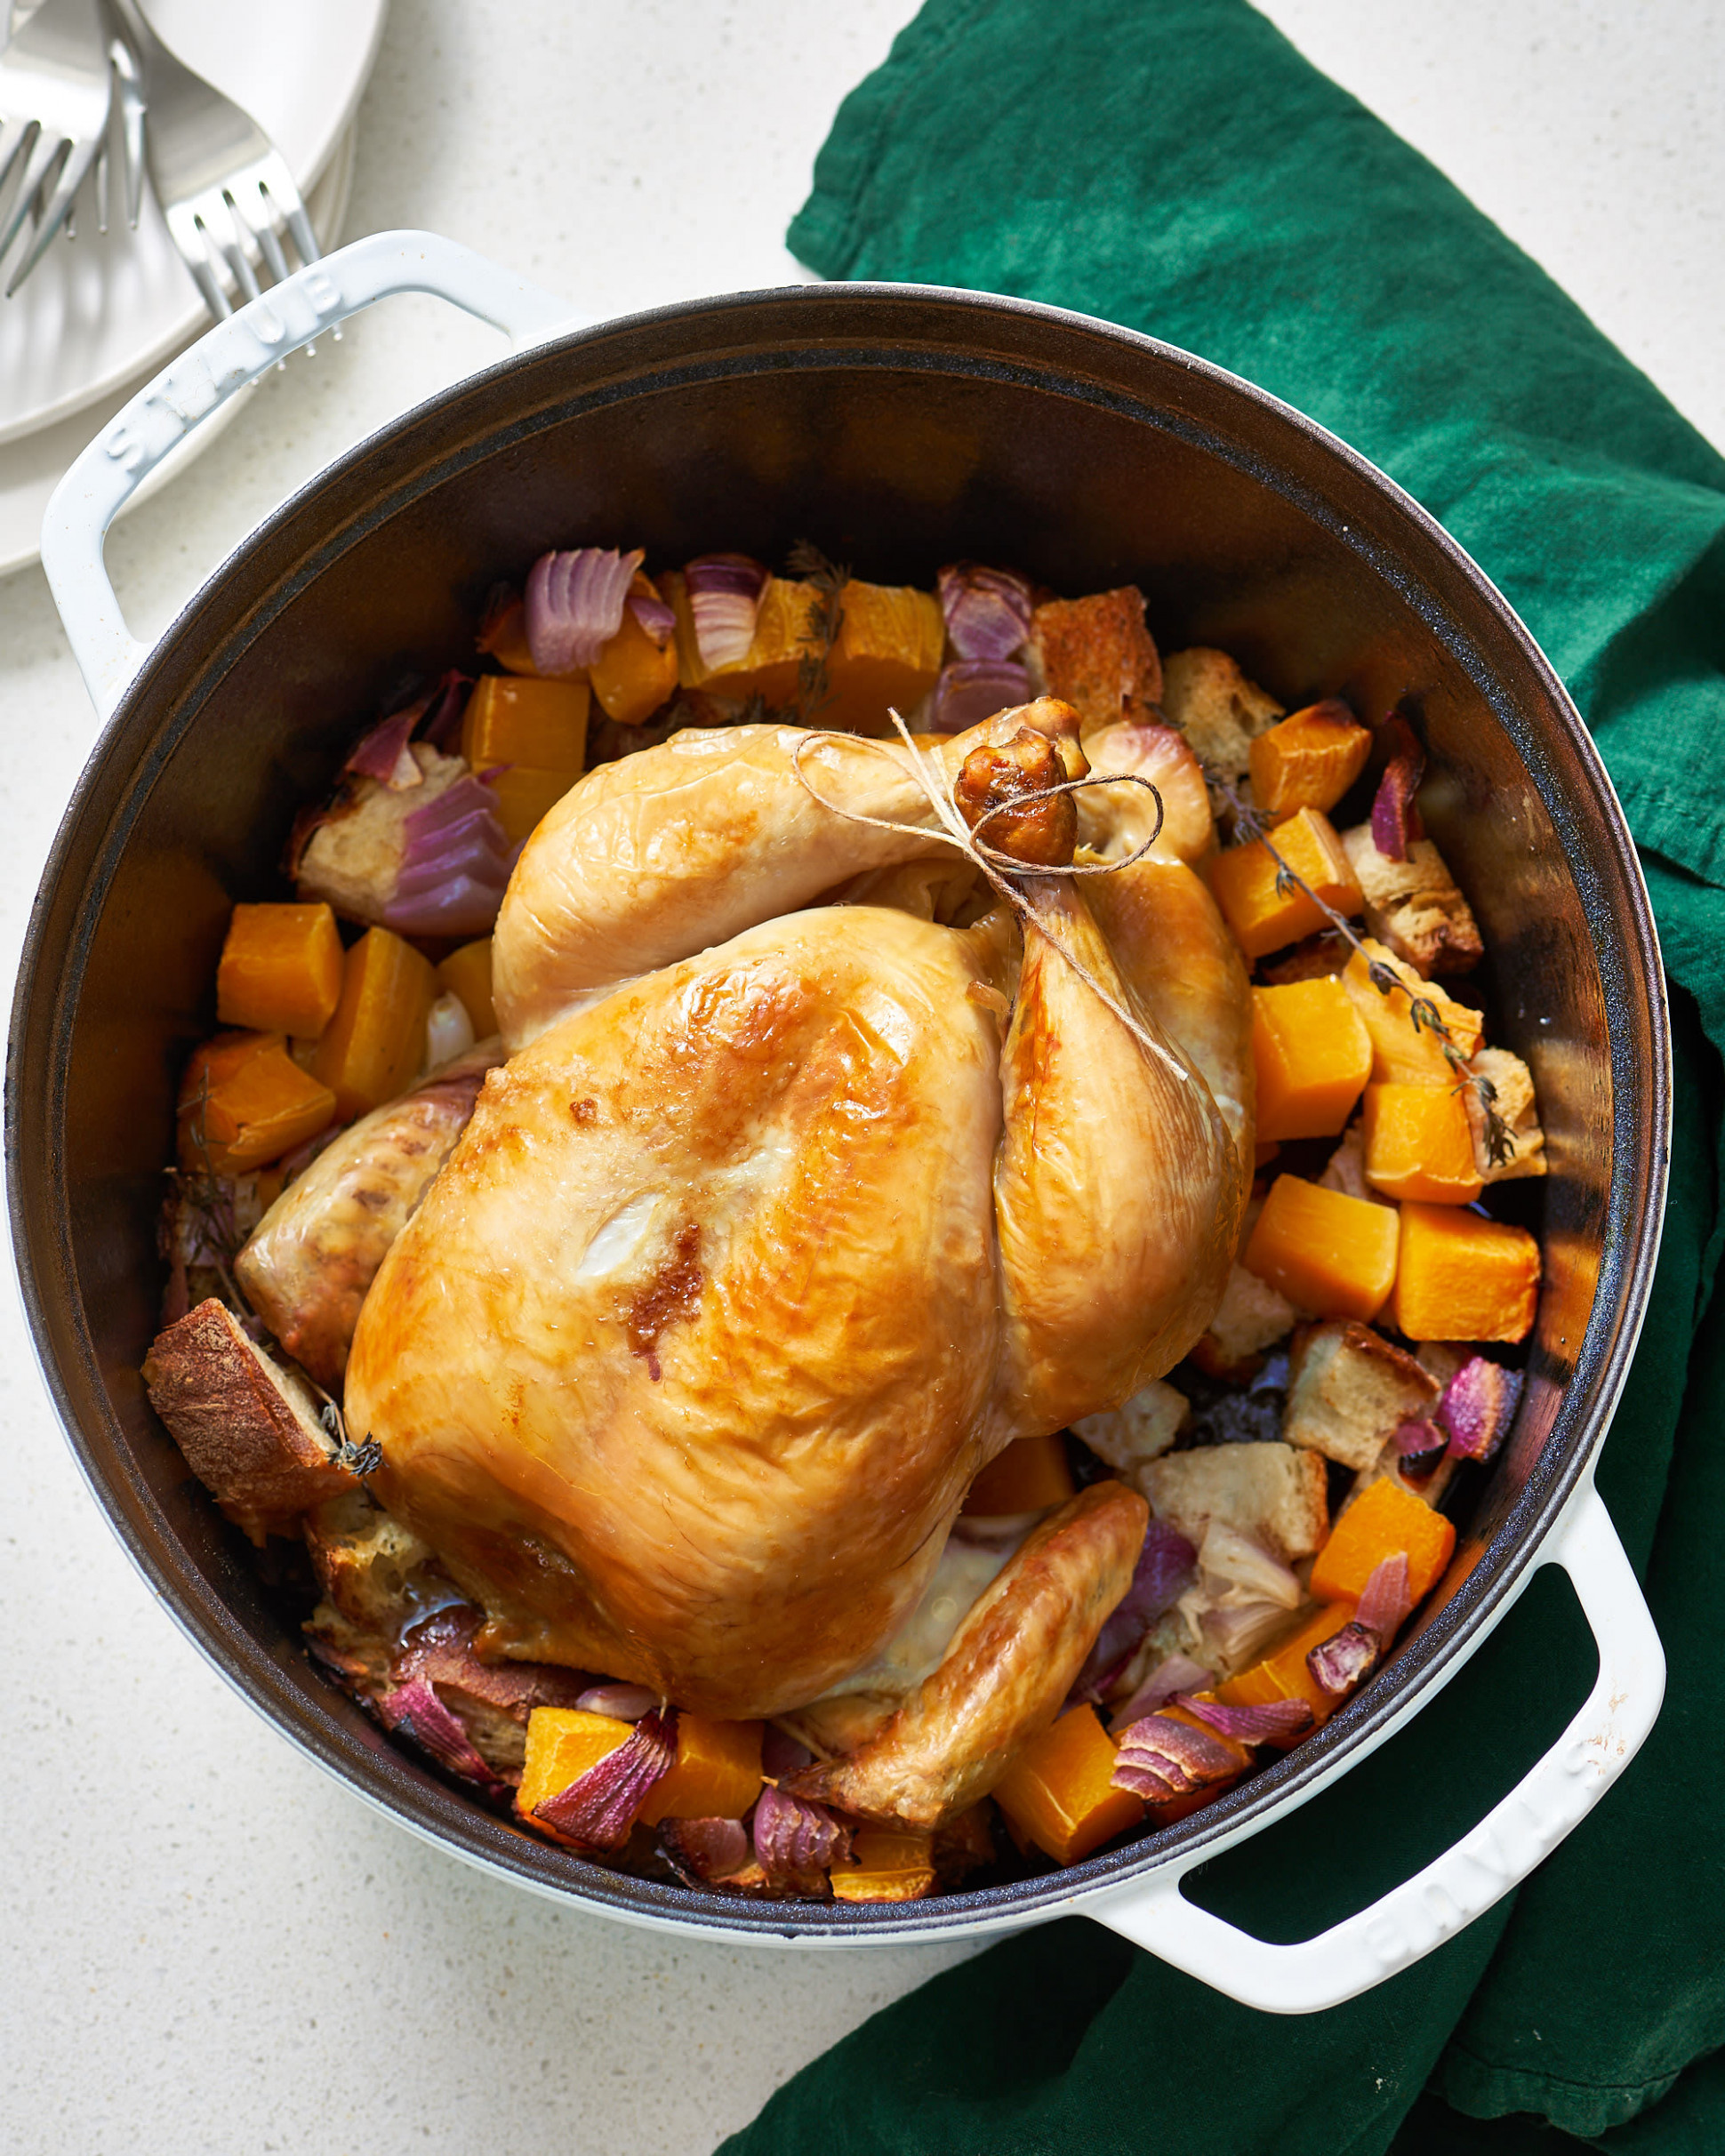 How To Cook A Whole Chicken Dinner In The Dutch Oven With Just 10 Ingredients - Recipes Dutch Oven Chicken